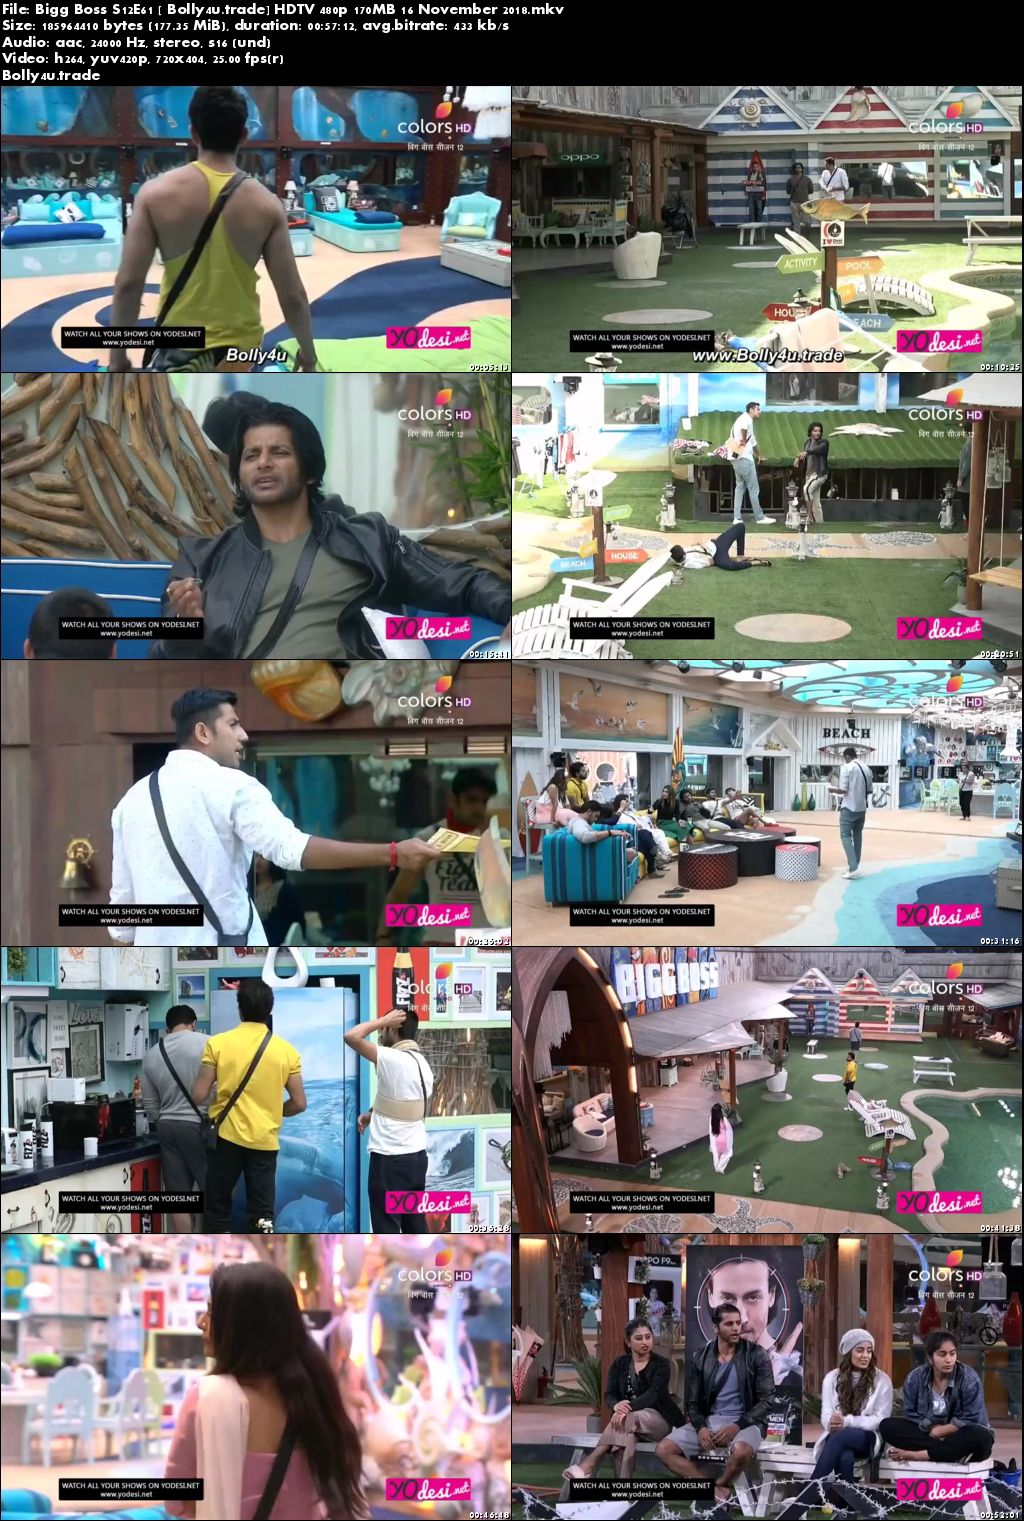 Bigg Boss S12E61 HDTV 480p 170MB 16 November 2018 Download